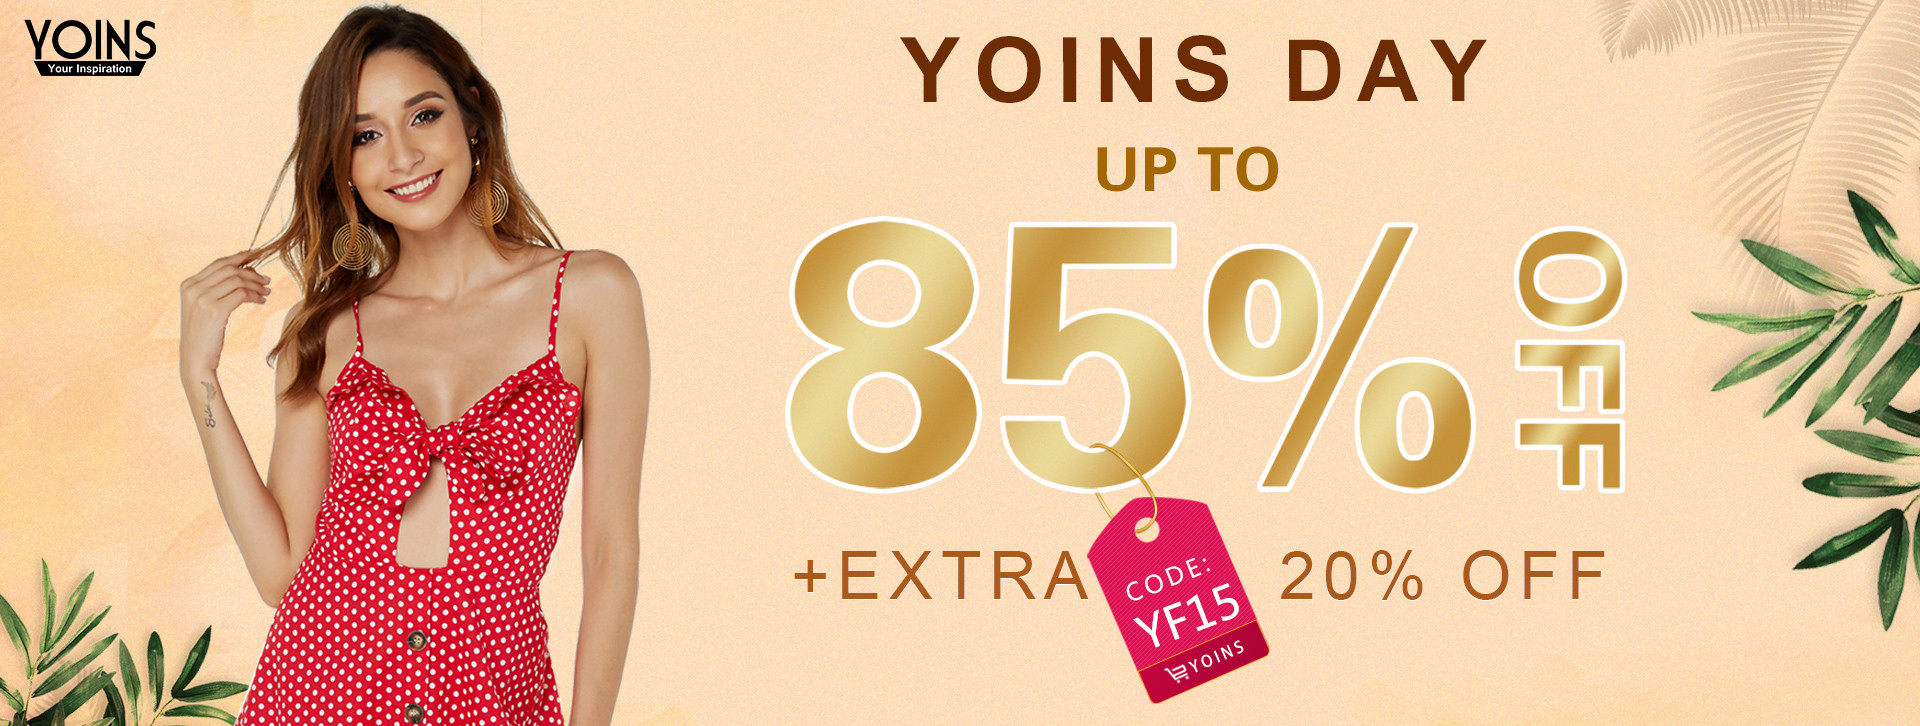 yoins codice coupon